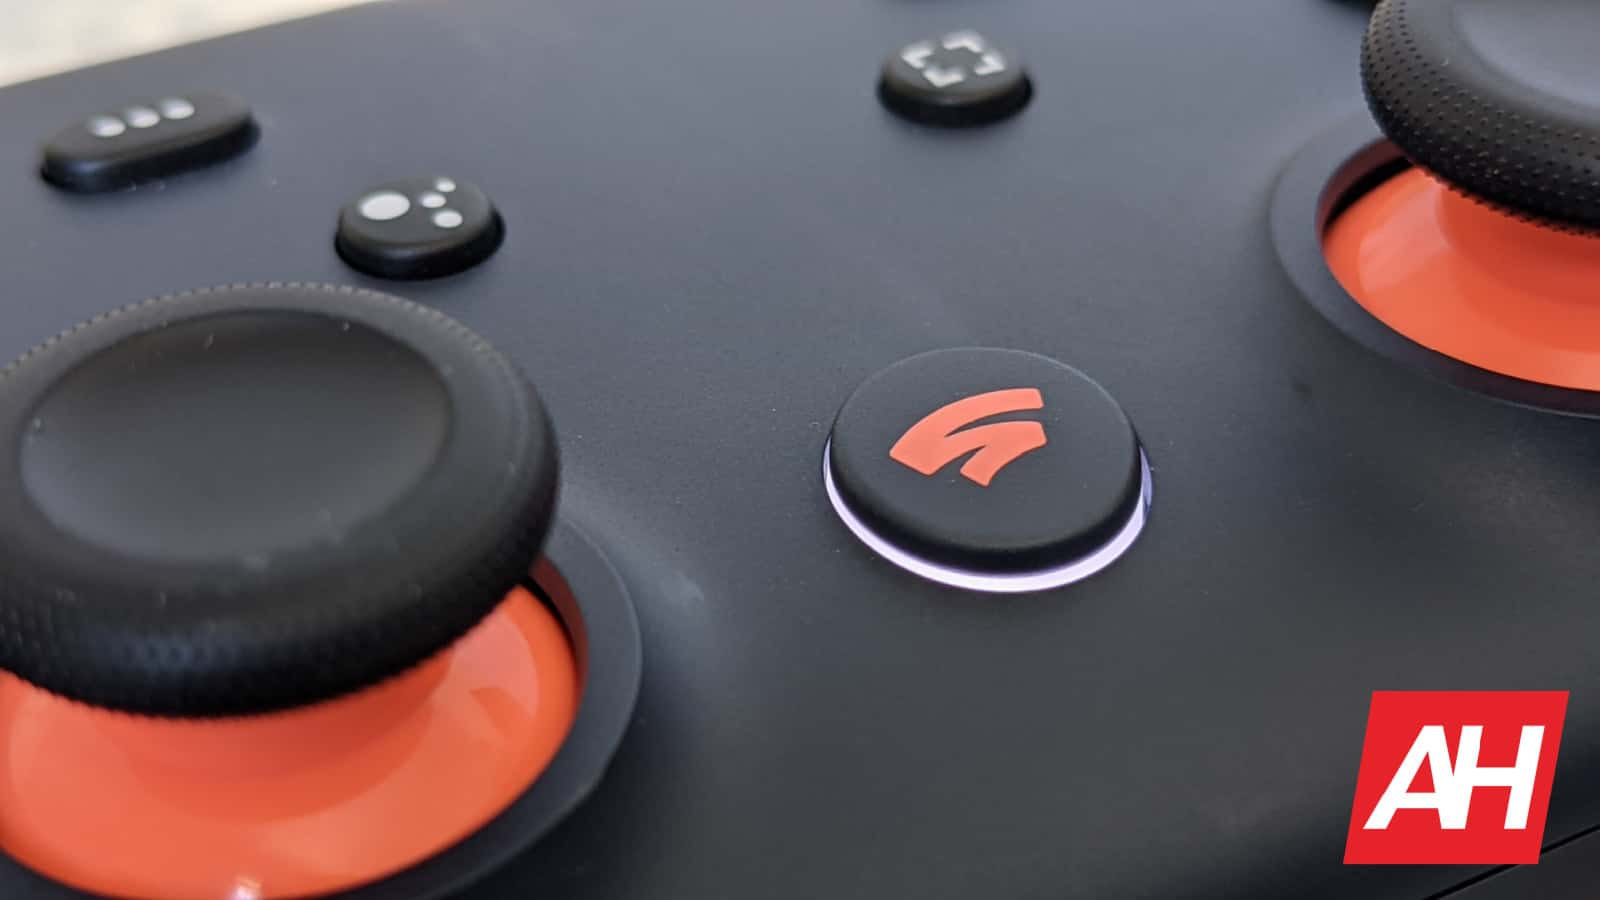 Google assures 'non-believers' that Stadia is booming